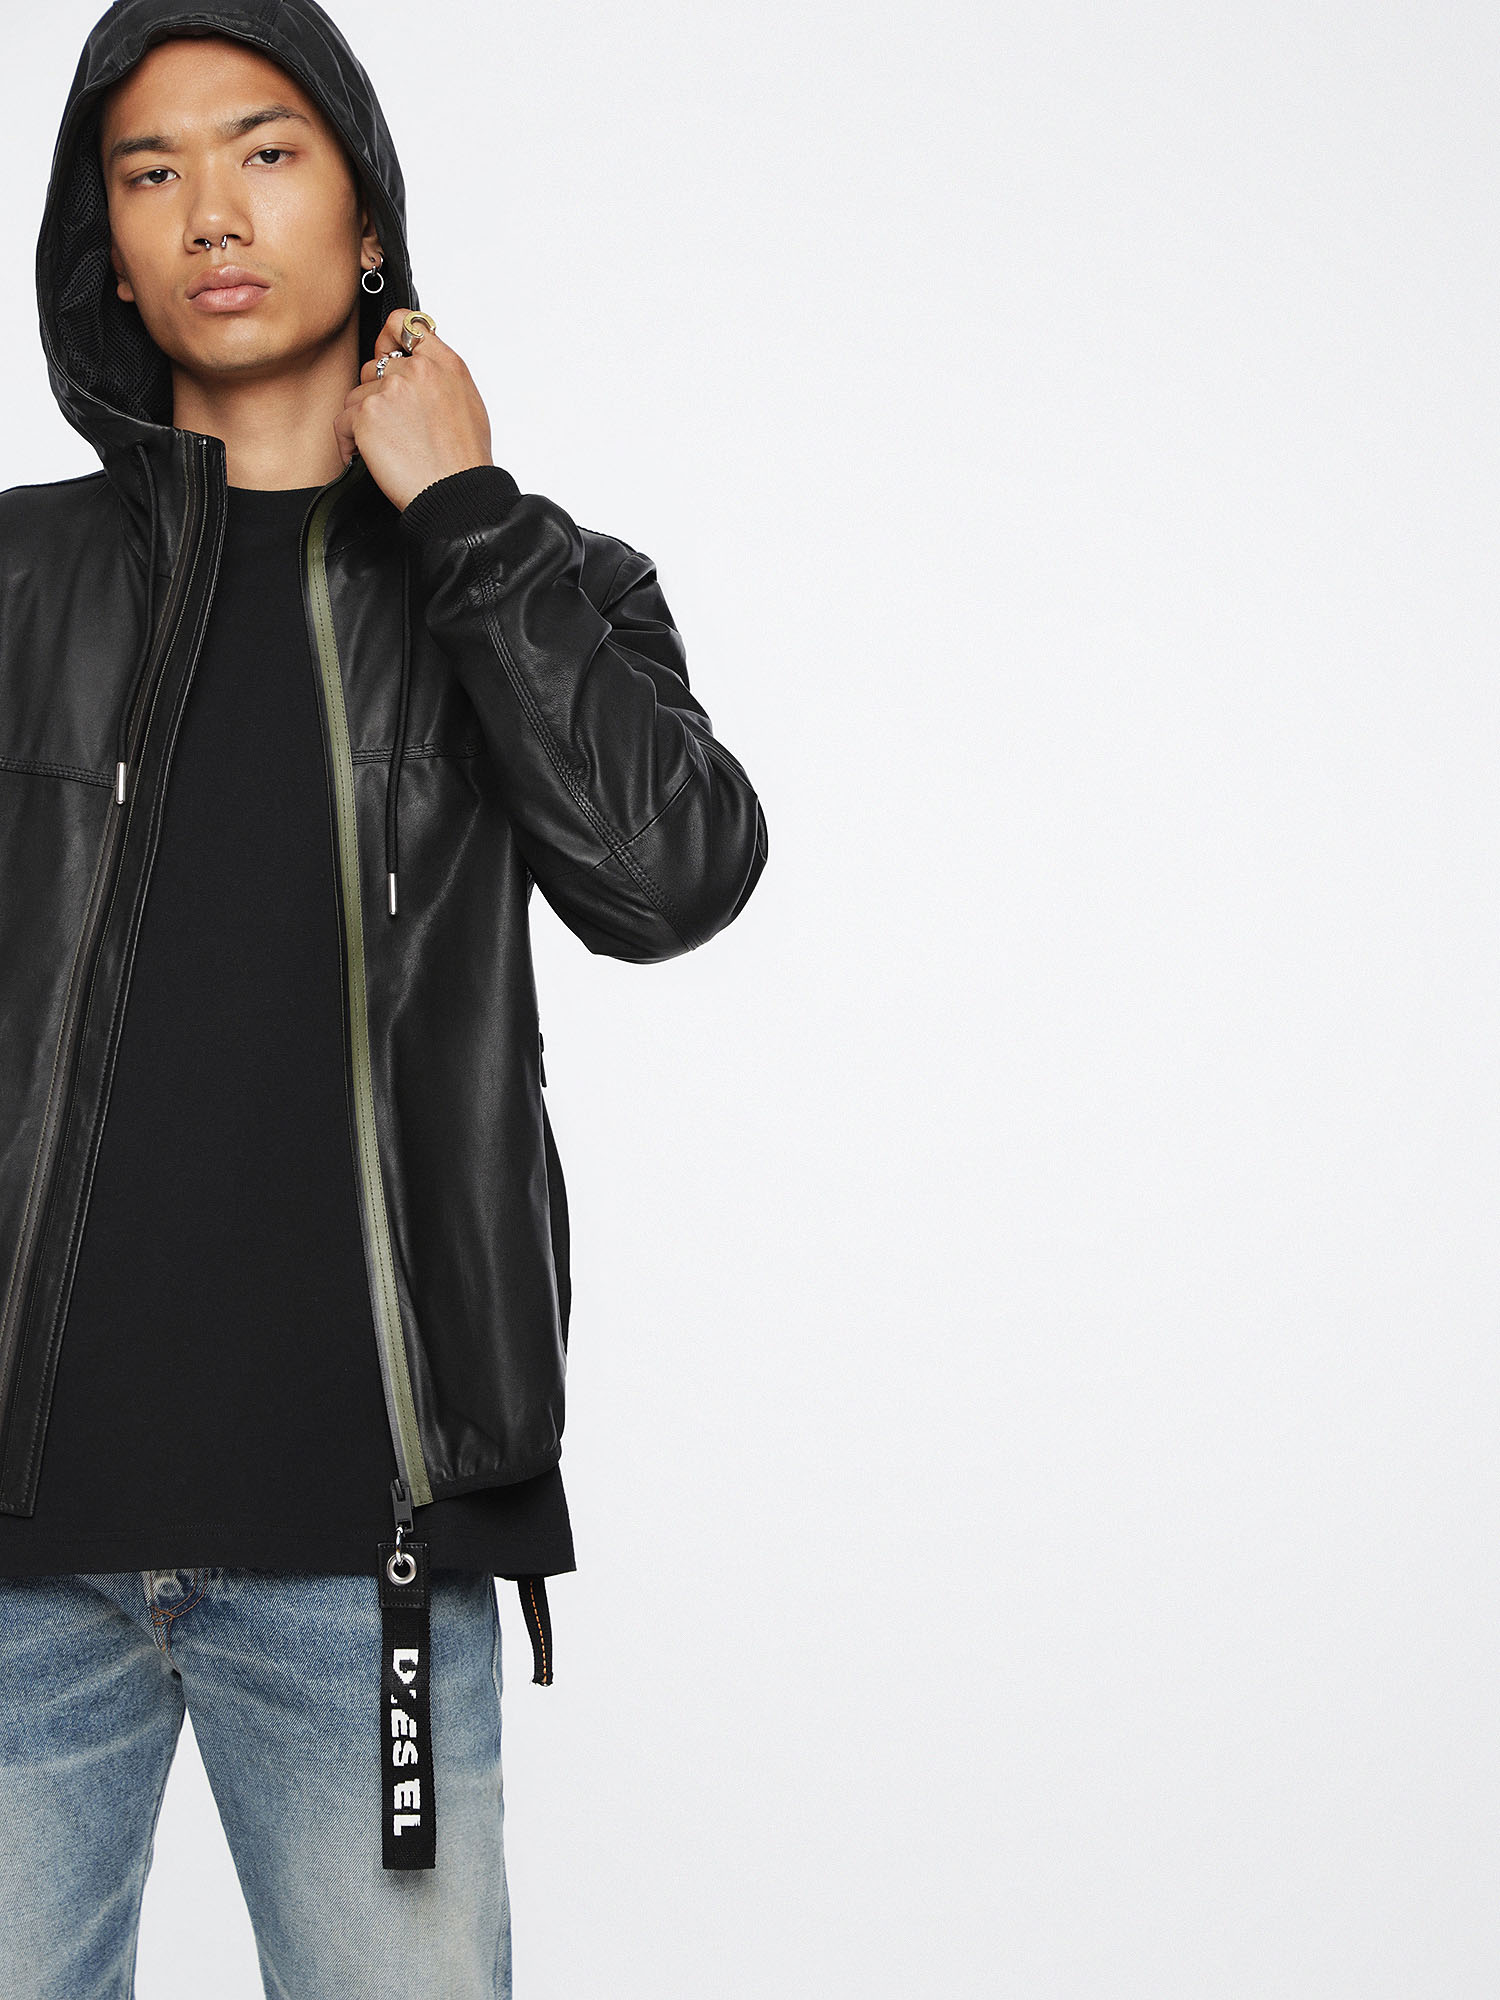 Diesel - L-TECH,  - Leather jackets - Image 3